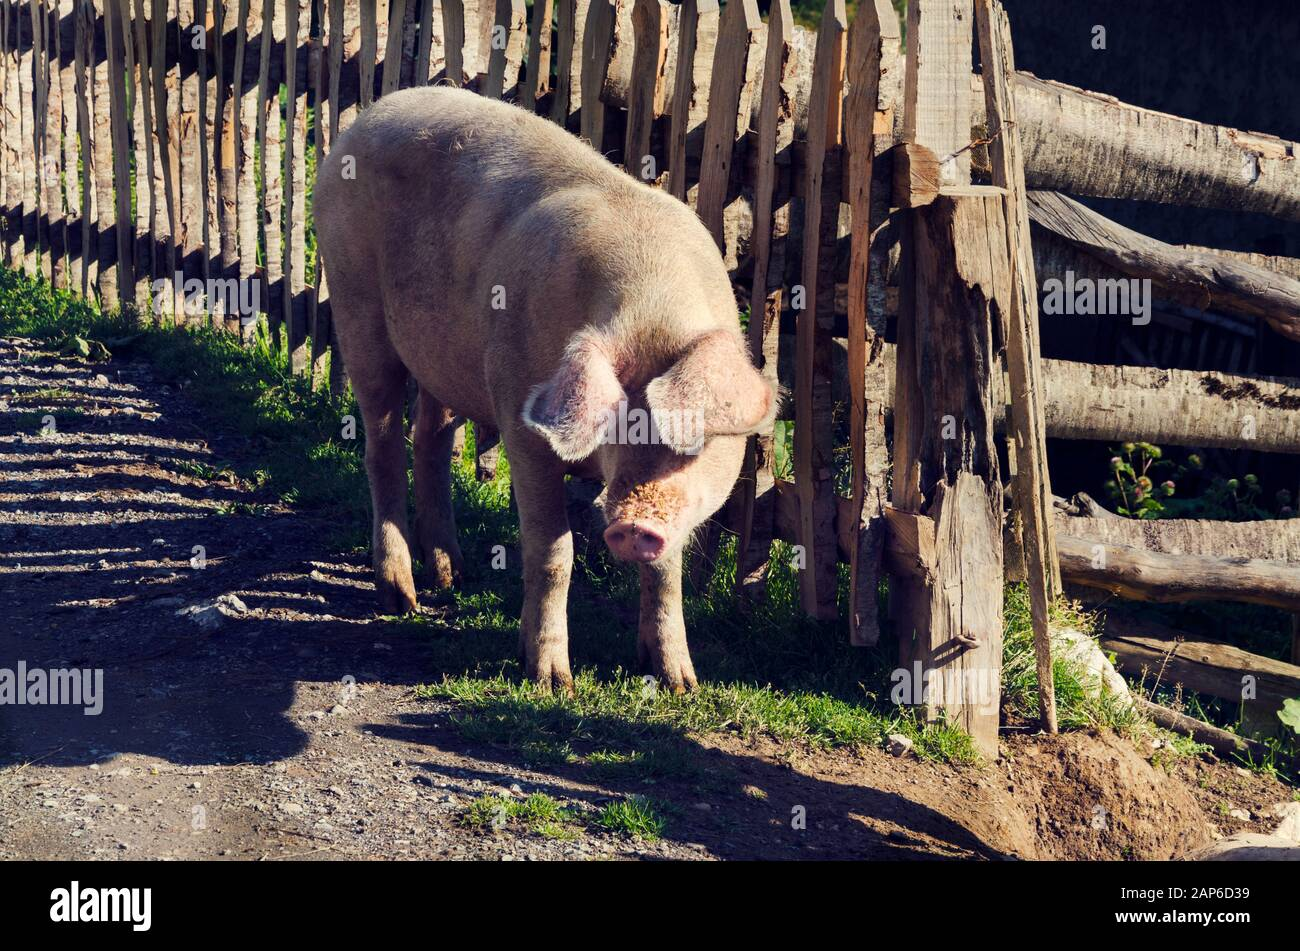 One pig next to wooden fence in Albanian farm. Selective focus Stock Photo